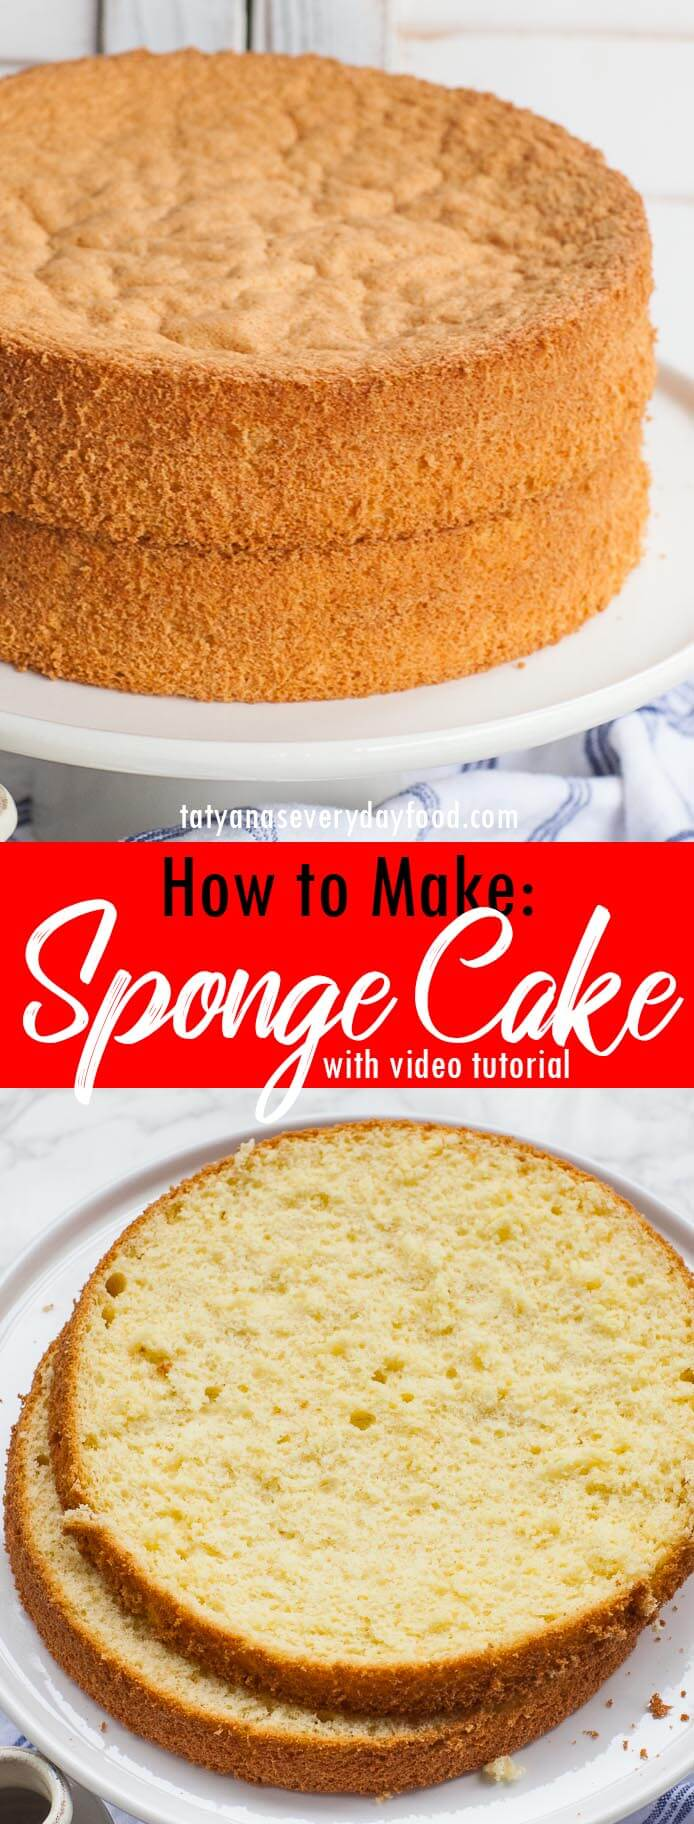 How to Make a Sponge Cake video recipe